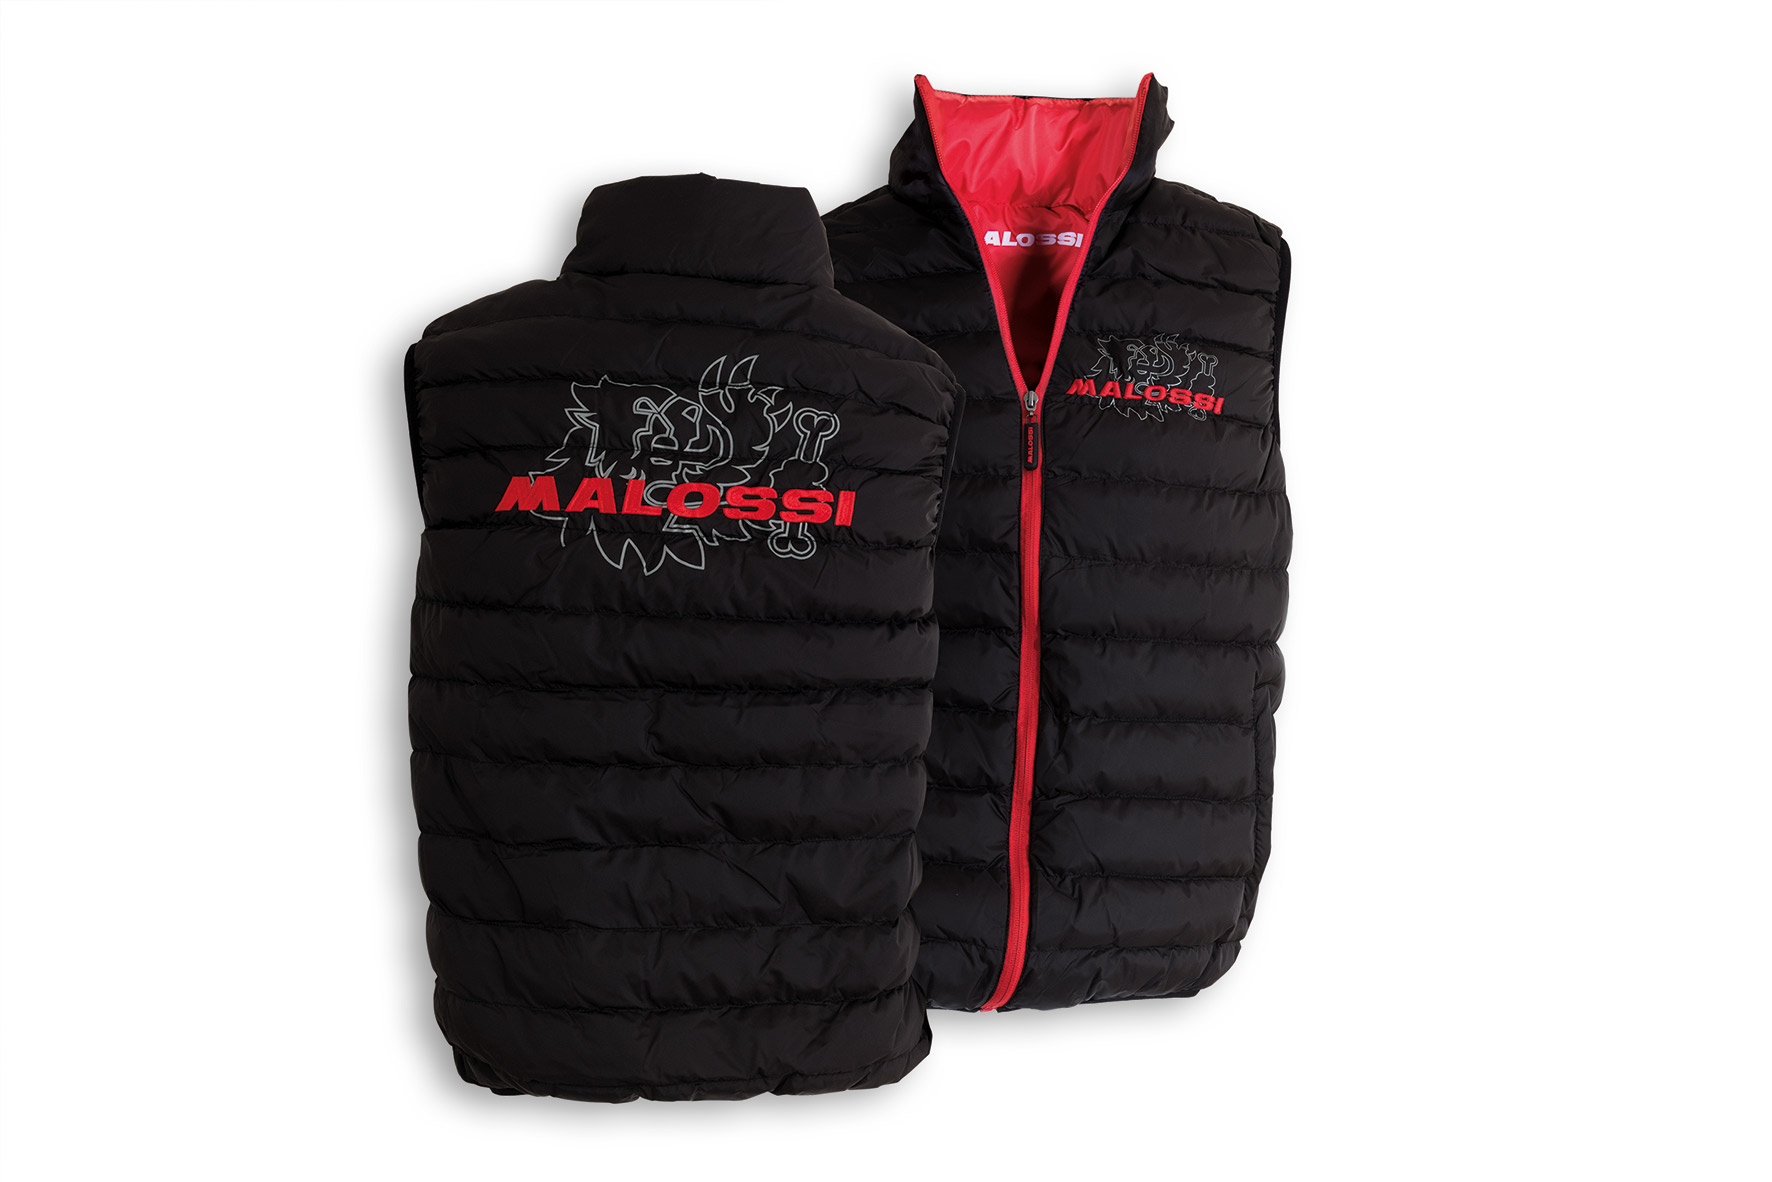 BLACK sleeveless PADDED JACKET MALOSSI (L)